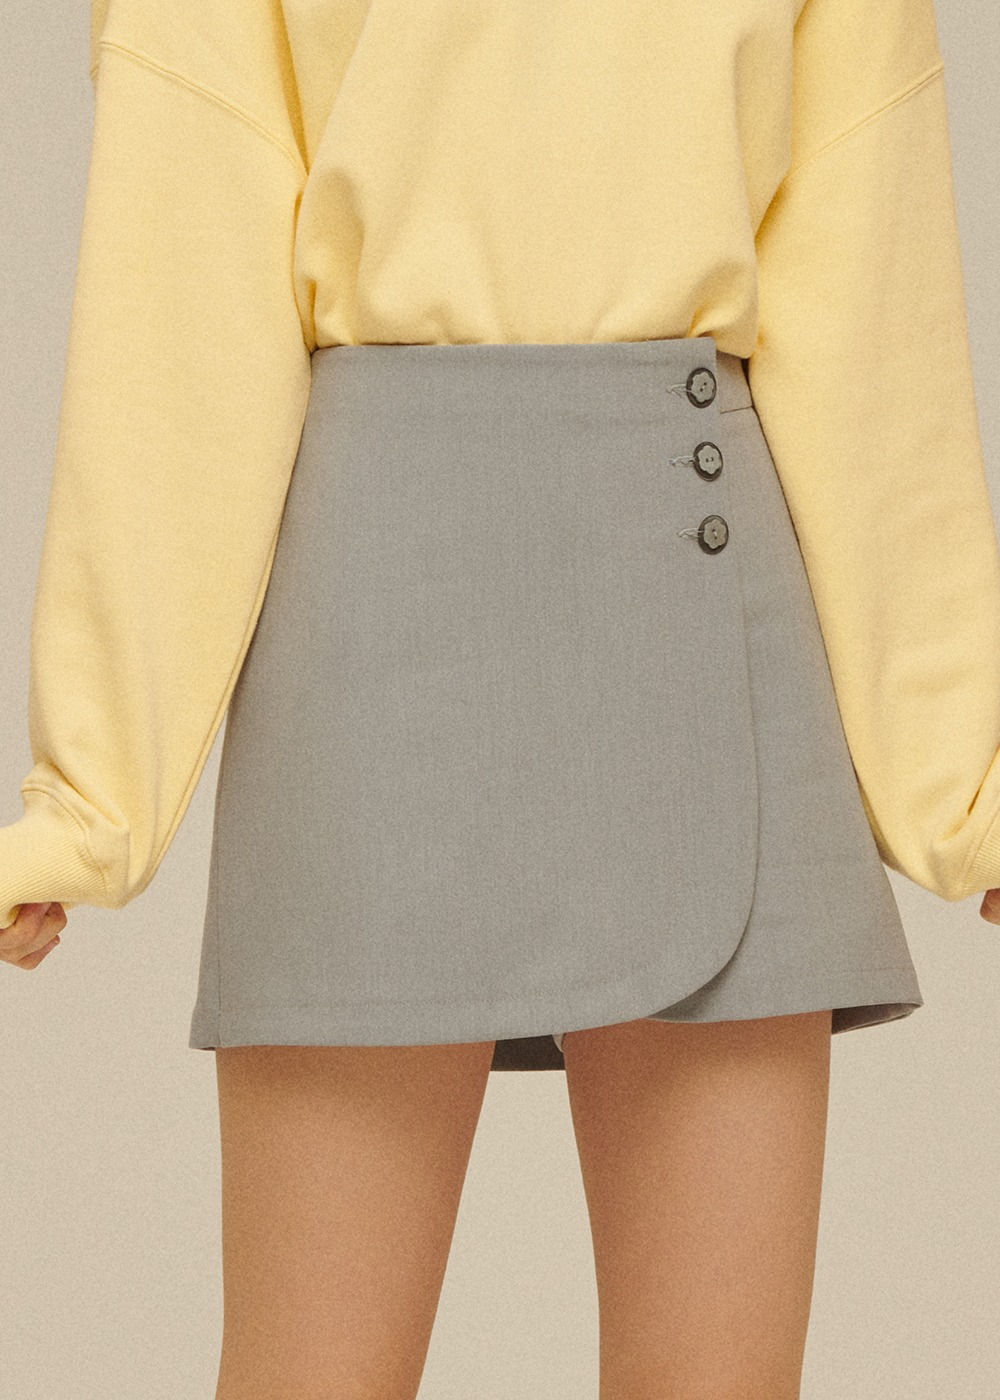 Rose Skirt Pants [STONE GREY]Rose Skirt Pants [STONE GREY]자체브랜드